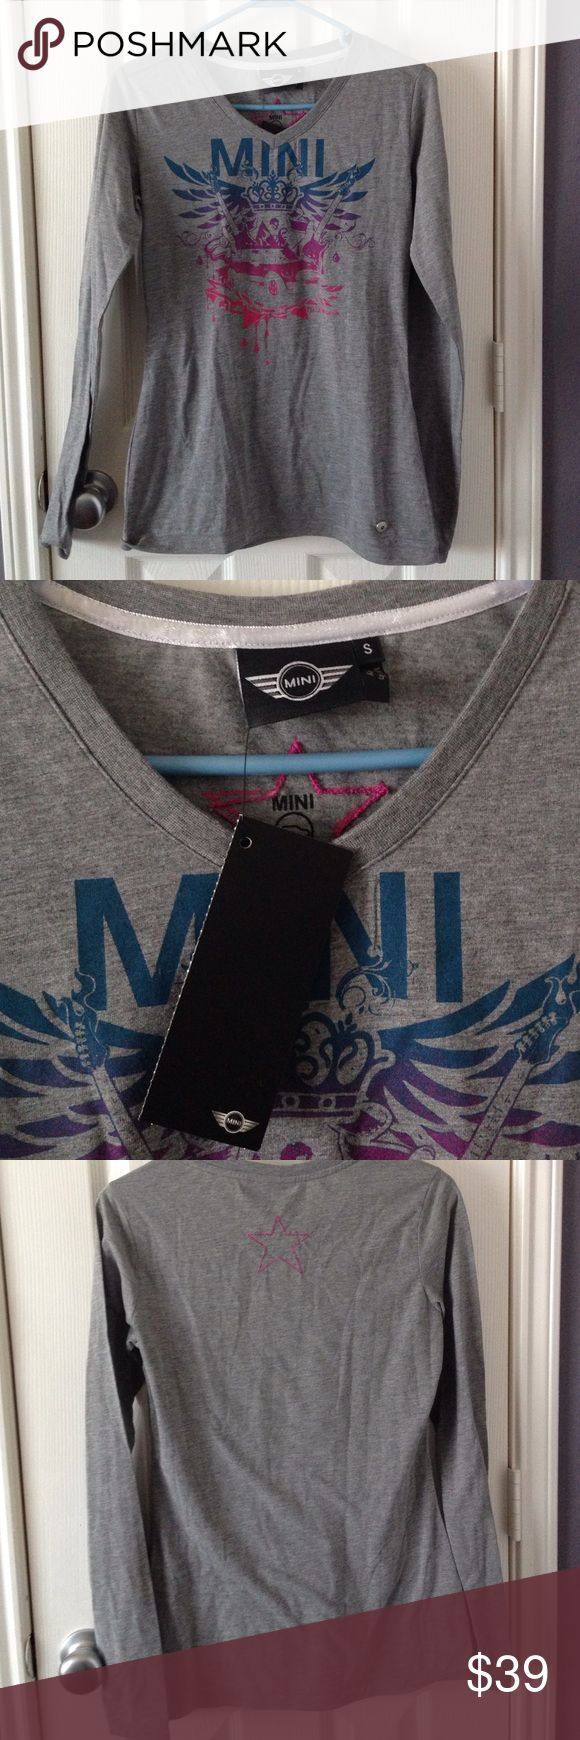 Mini Cooper Logo long sleeve shirt Grey long sleeve logo shirt from Mini. Size small and  perfect for any Mini Cooper fan! 🚗 Price is negotiable for serious buyers Tops Tees - Long Sleeve